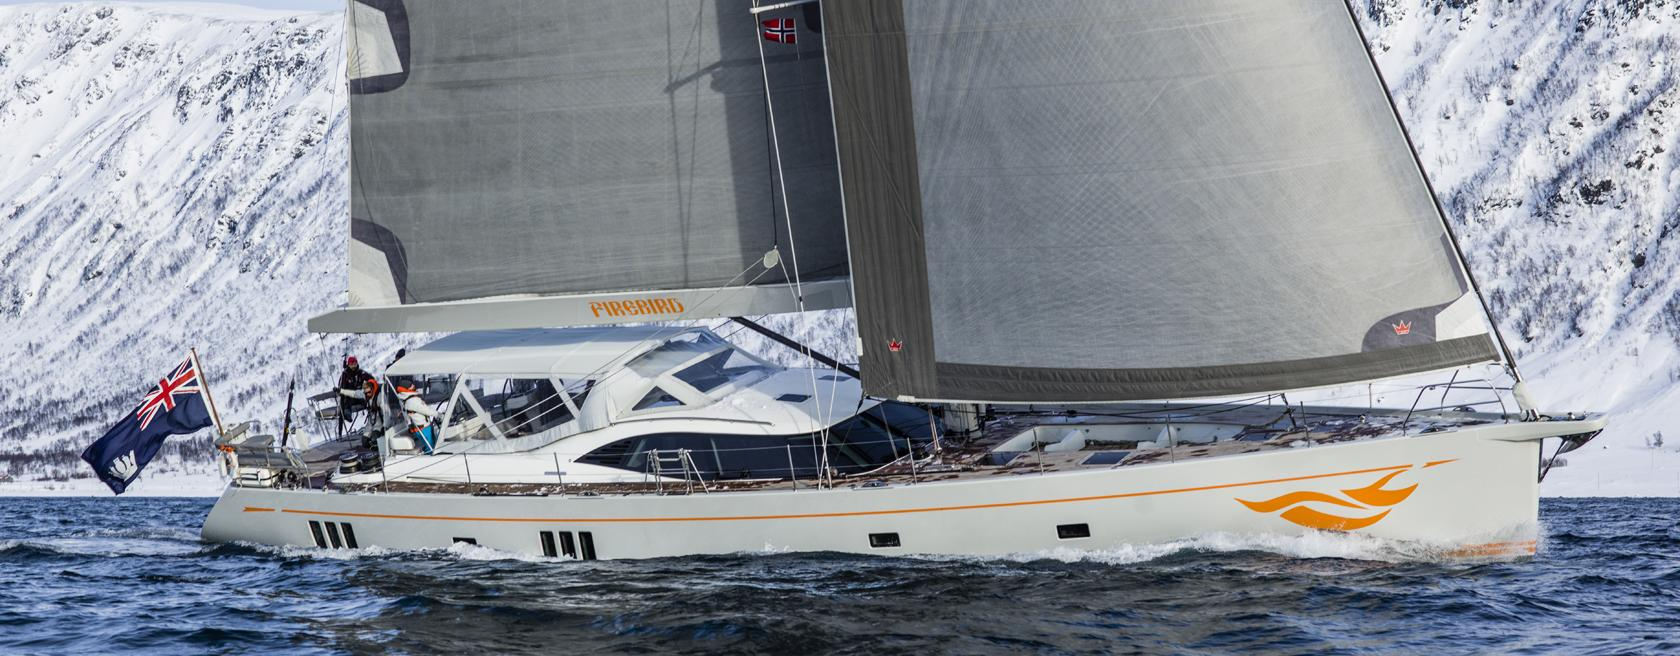 Oyster 885 Firebird Sailing in Norway